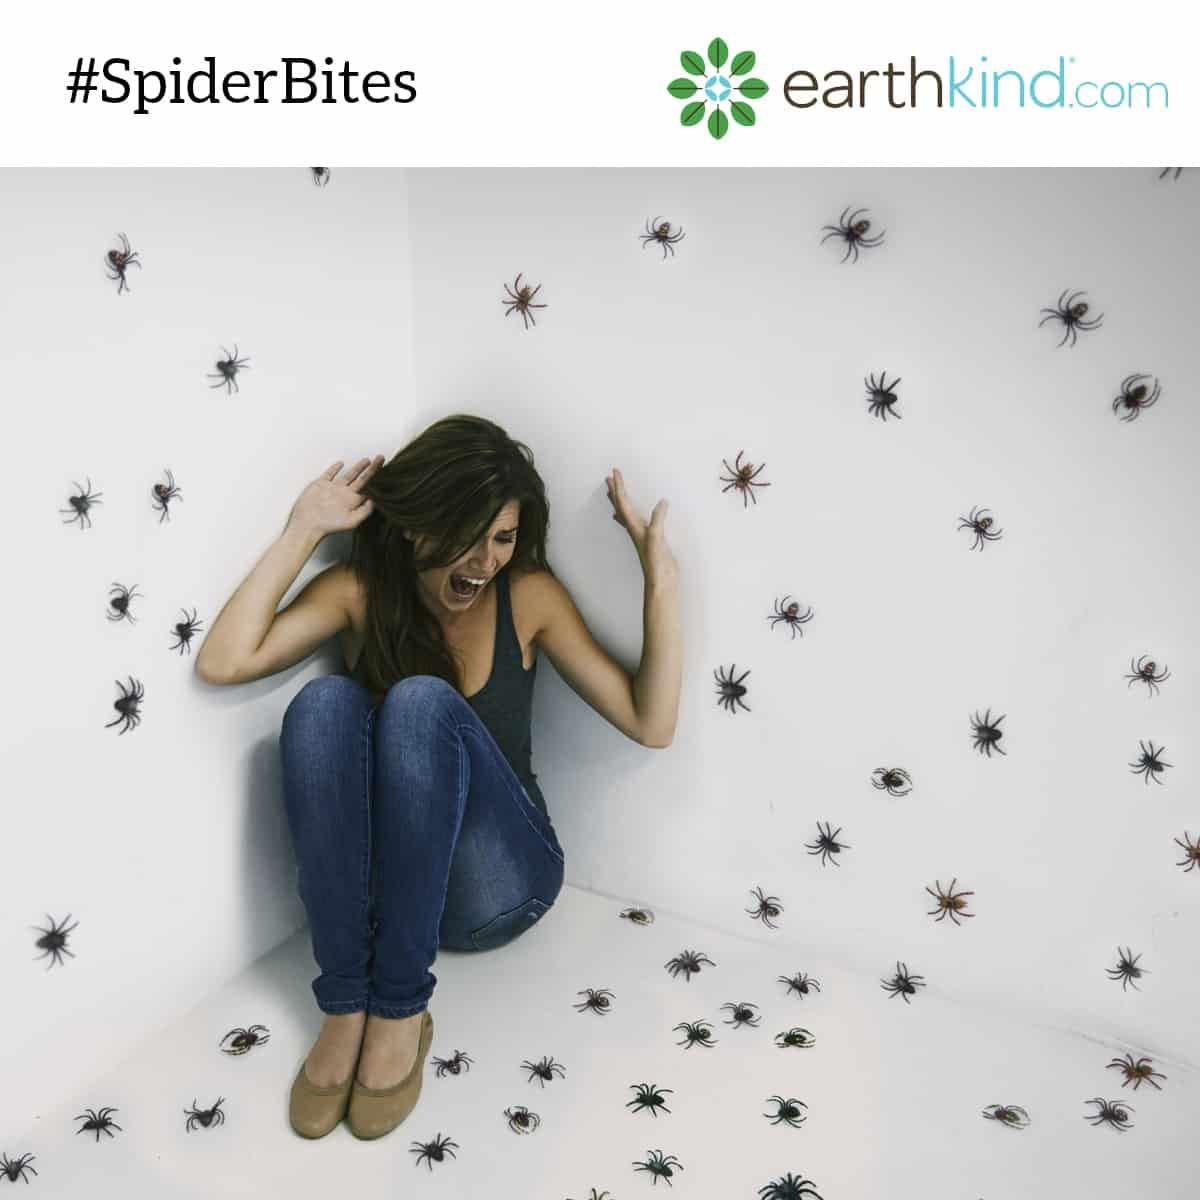 Keep Spiders Out of Your Home